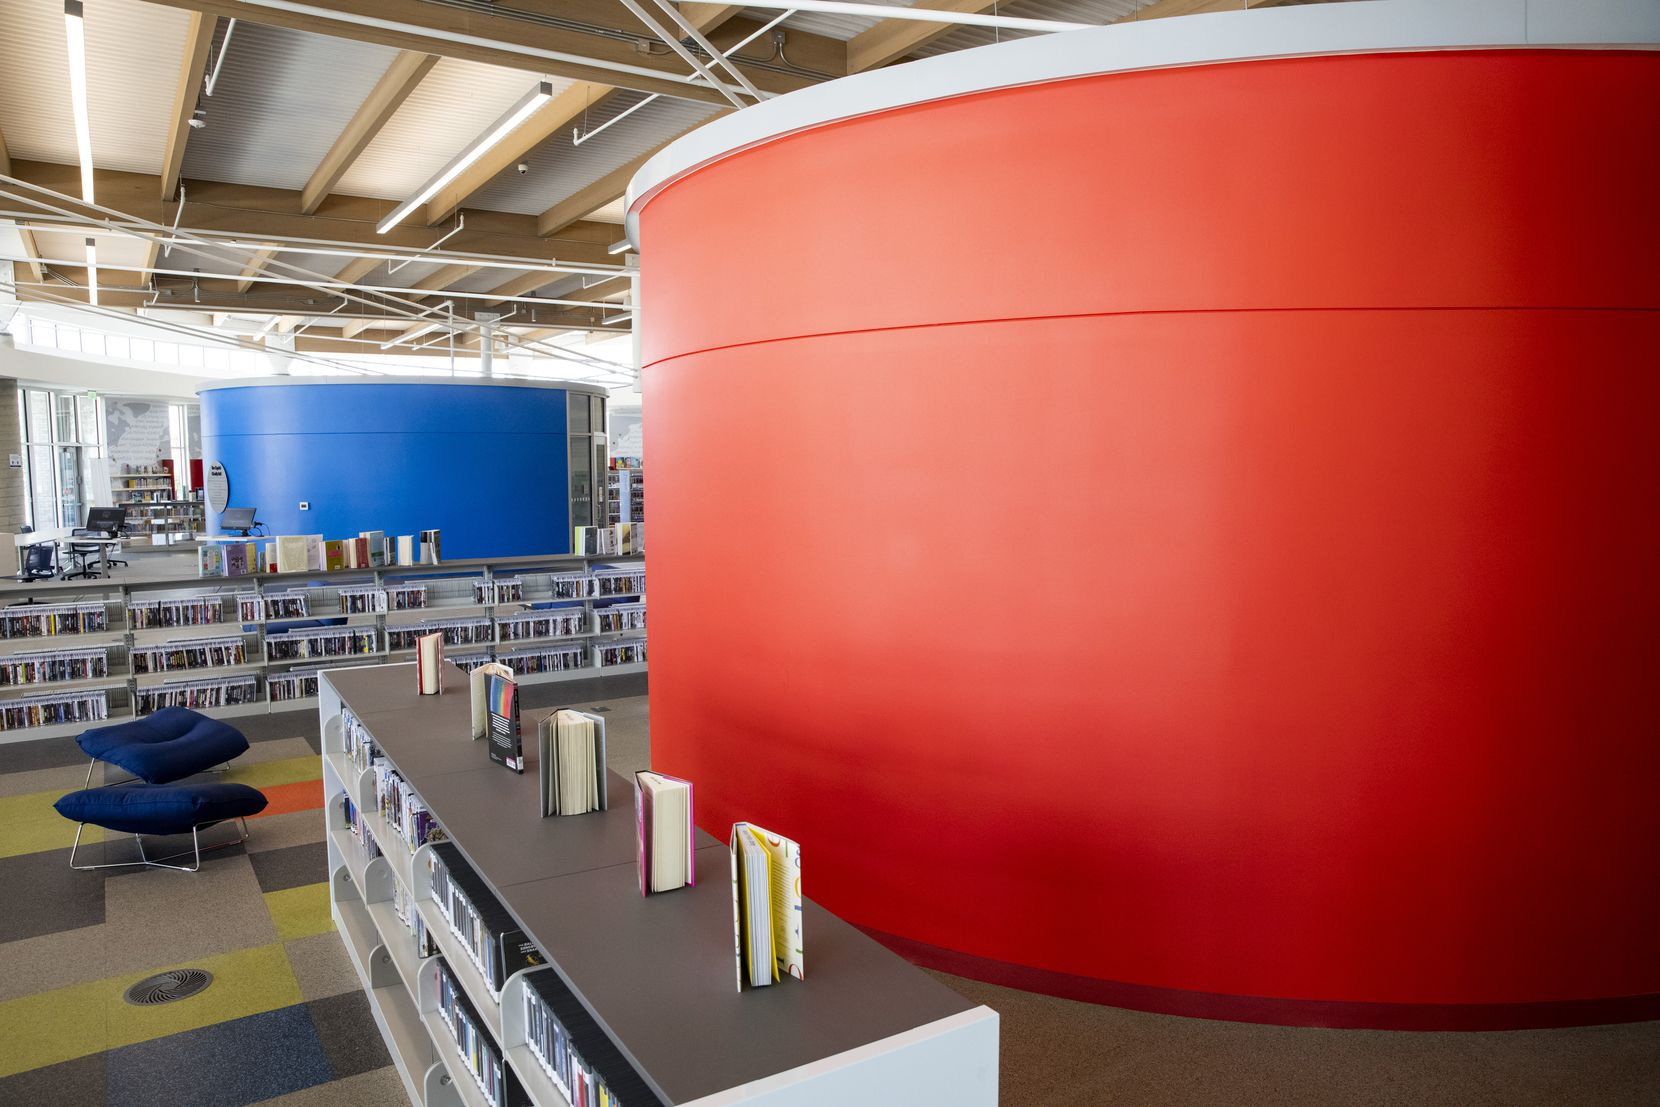 Inside, three colorful drum-shaped pods provide closed areas for classes and meetings.